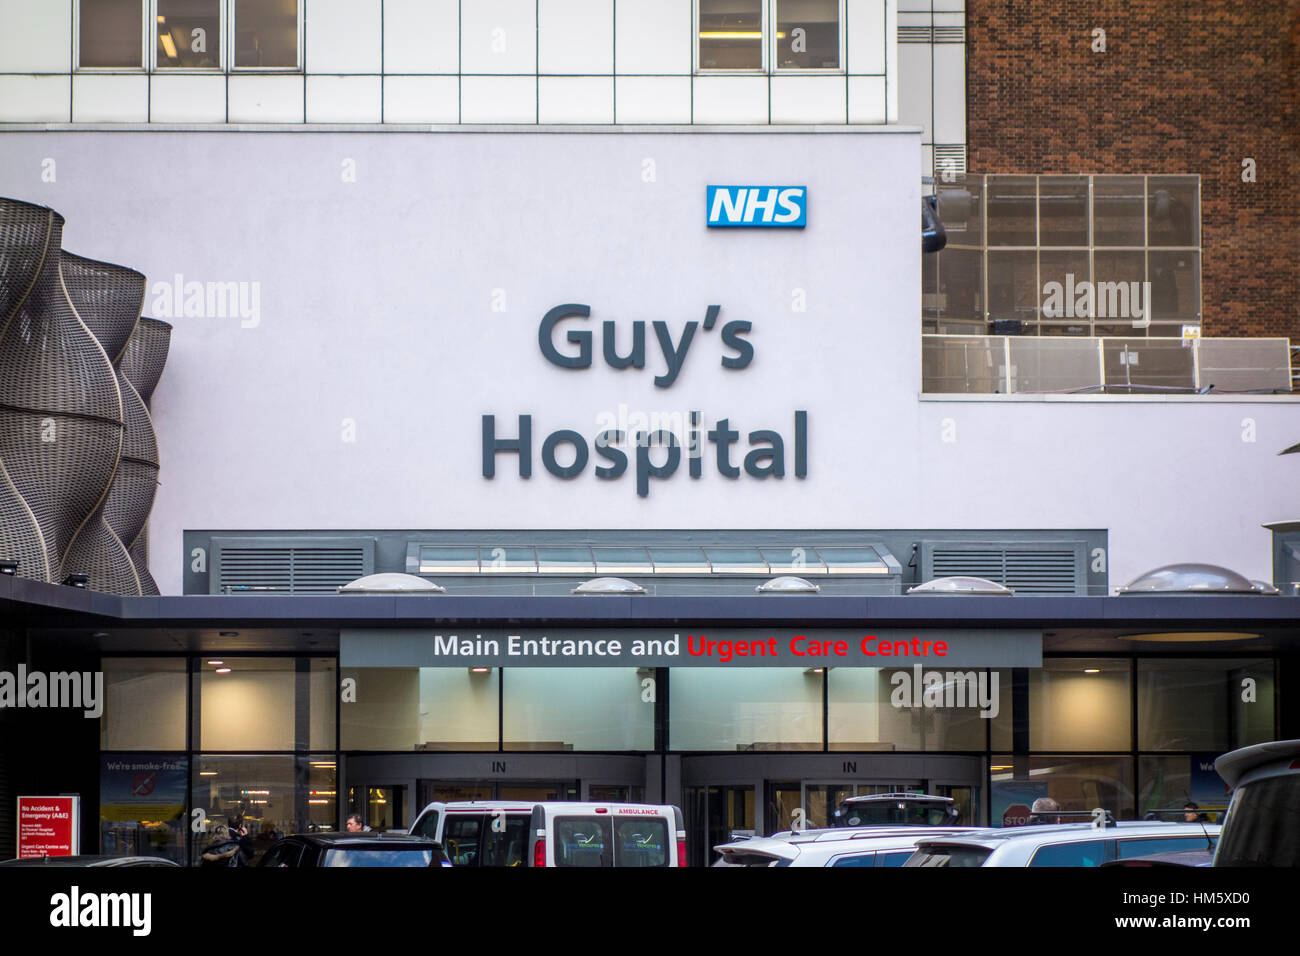 Guy's Hospital NHS, entrée principale, London, UK Photo Stock